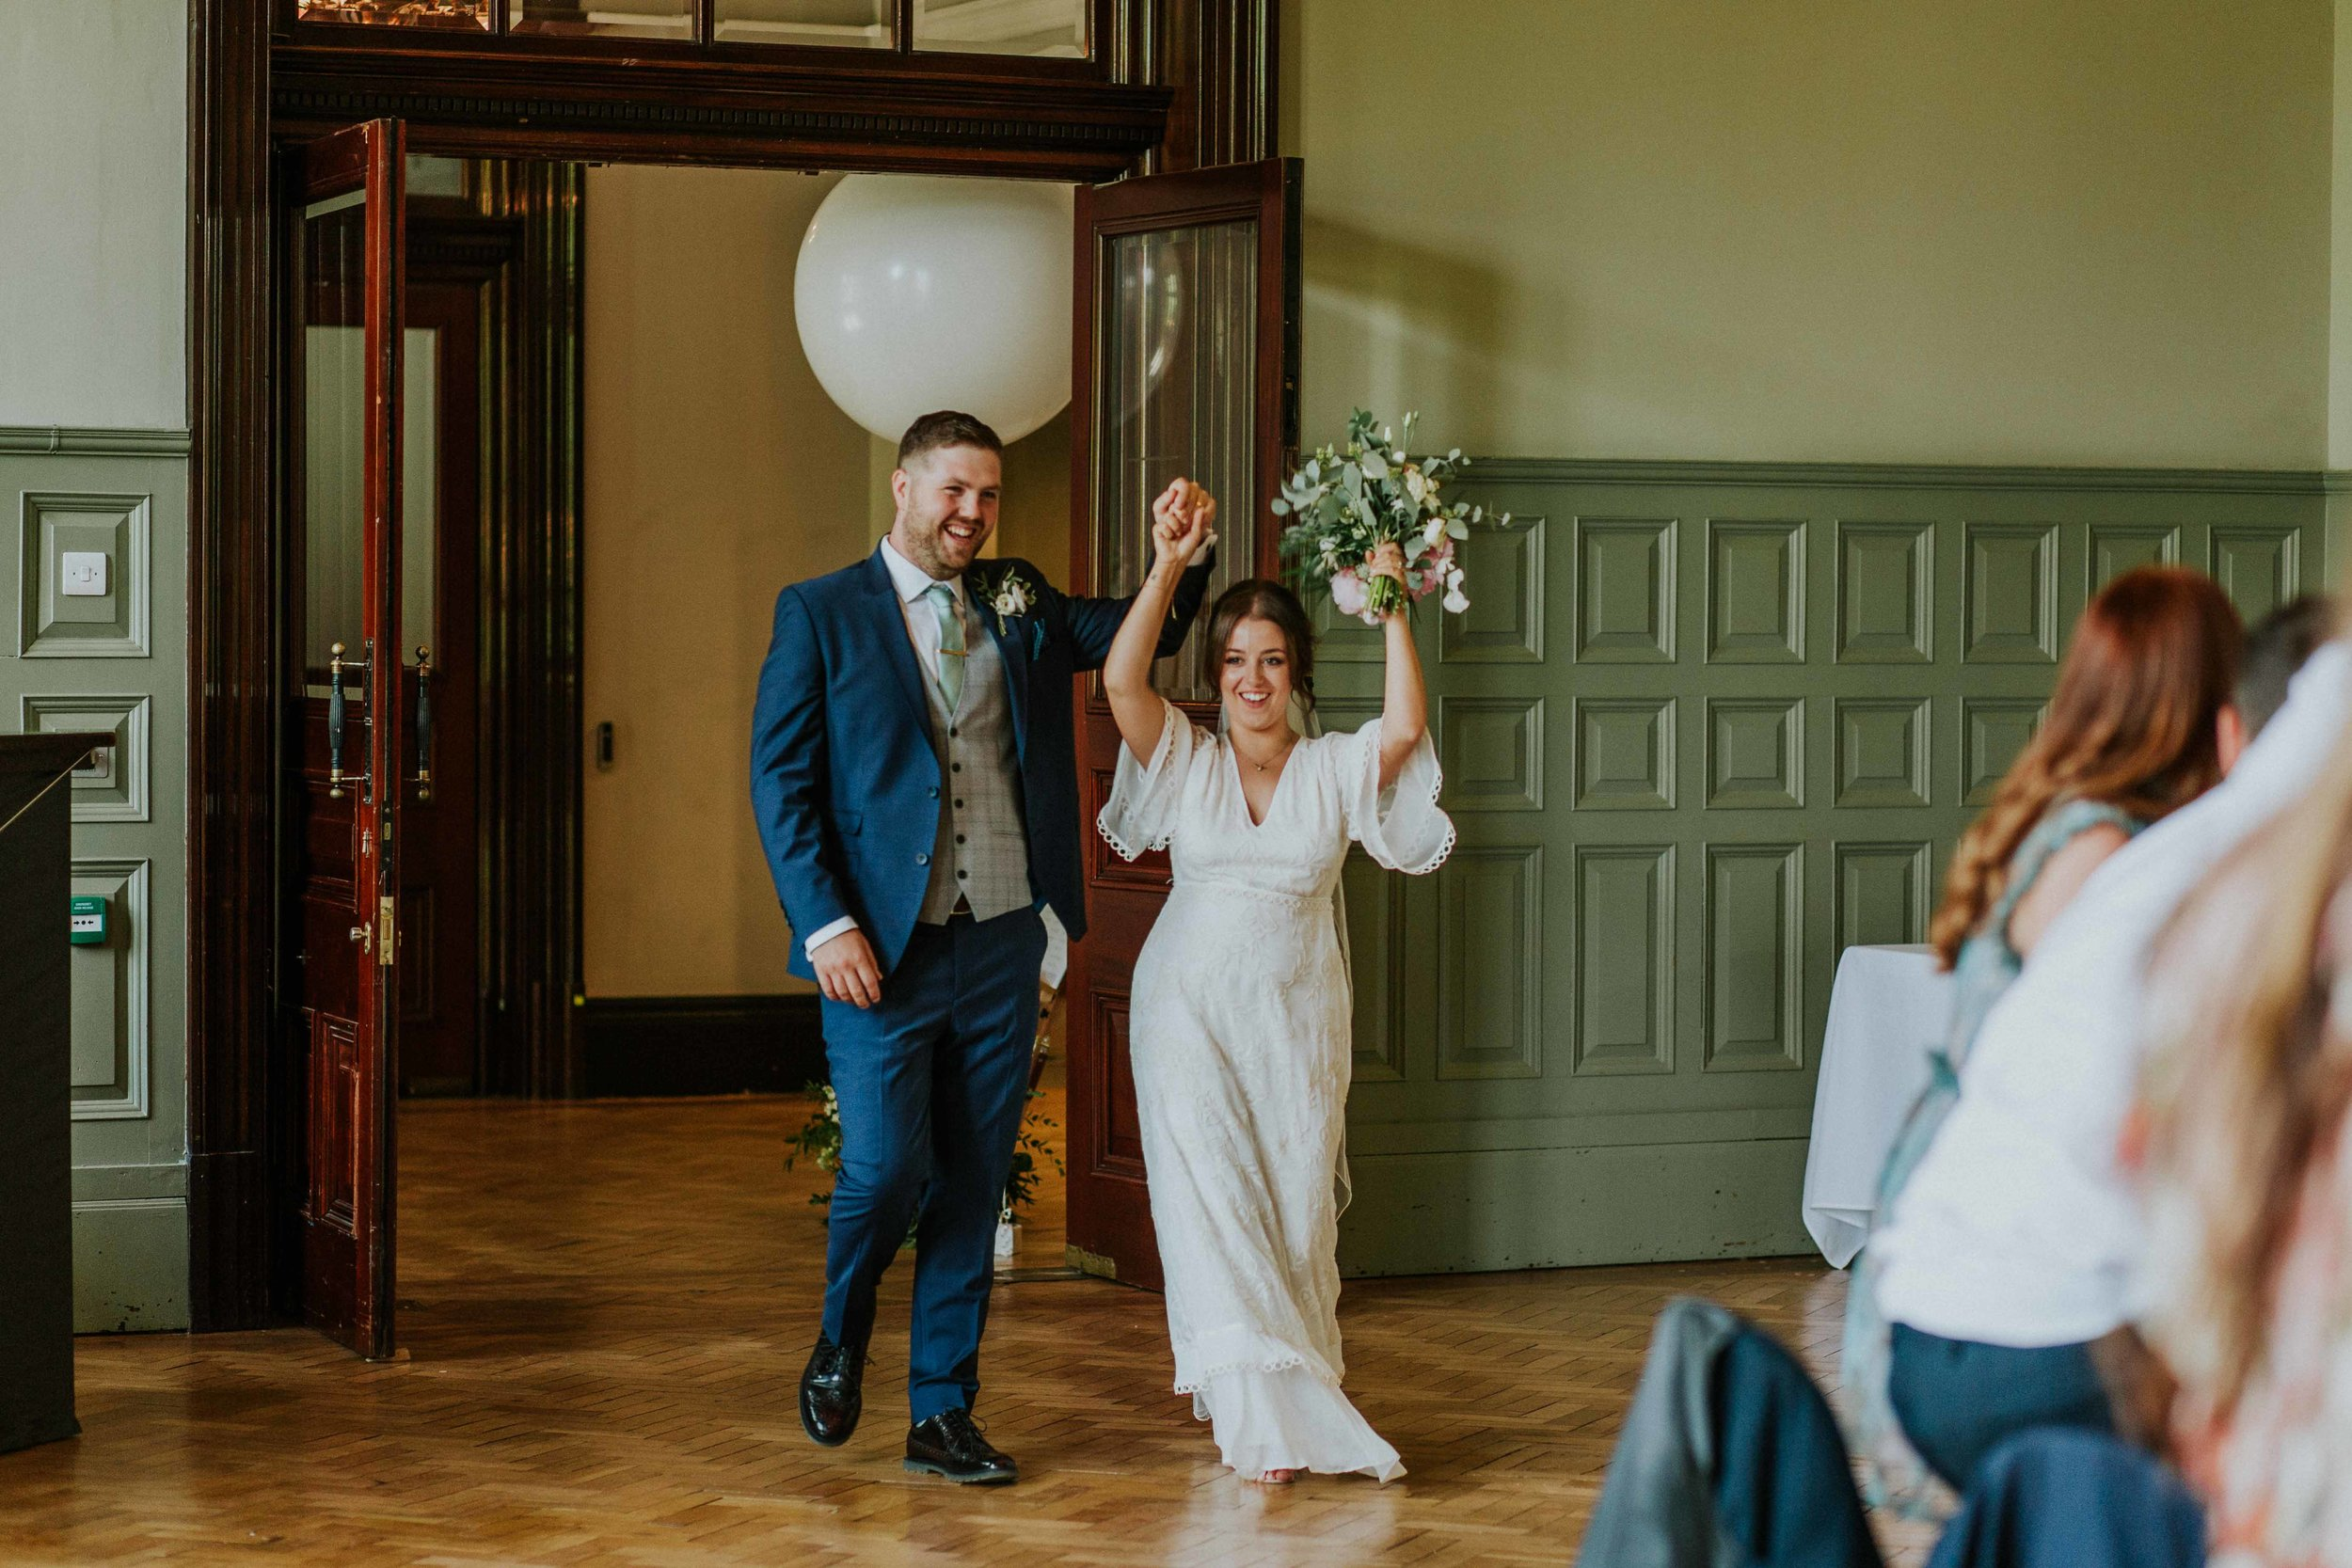 The Whitworth Art Gallery Manchester wedding photo